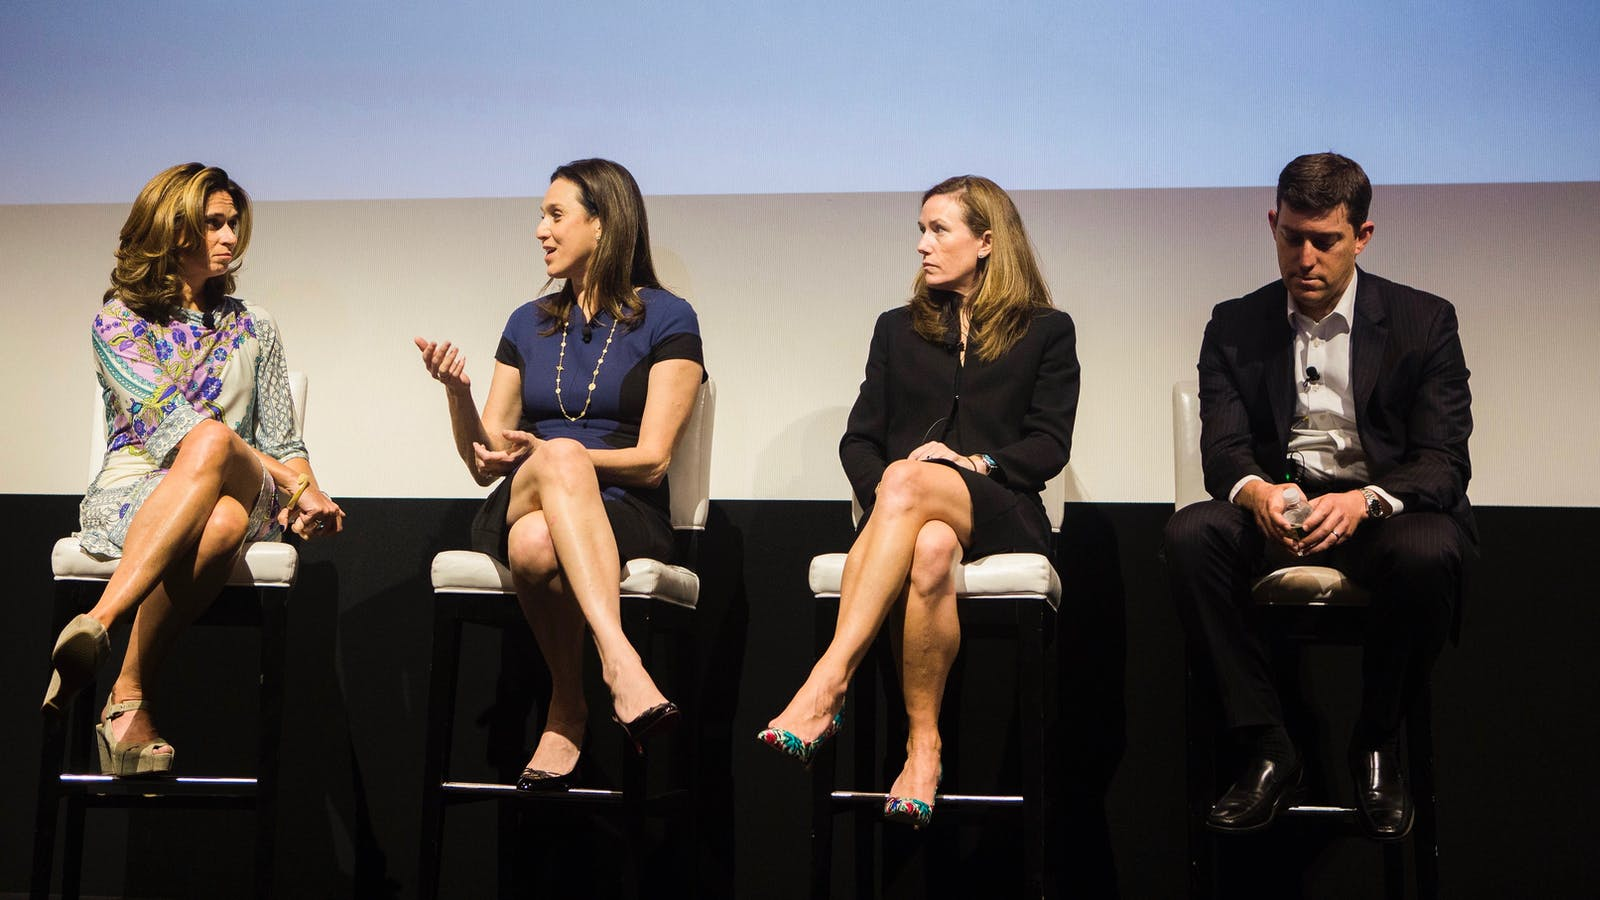 Serena Saitto talking with Michael Katz, AJ Murphy and David Ludwig at the Future of Finance event in New York. Photo by Gabriela Bhaskar.